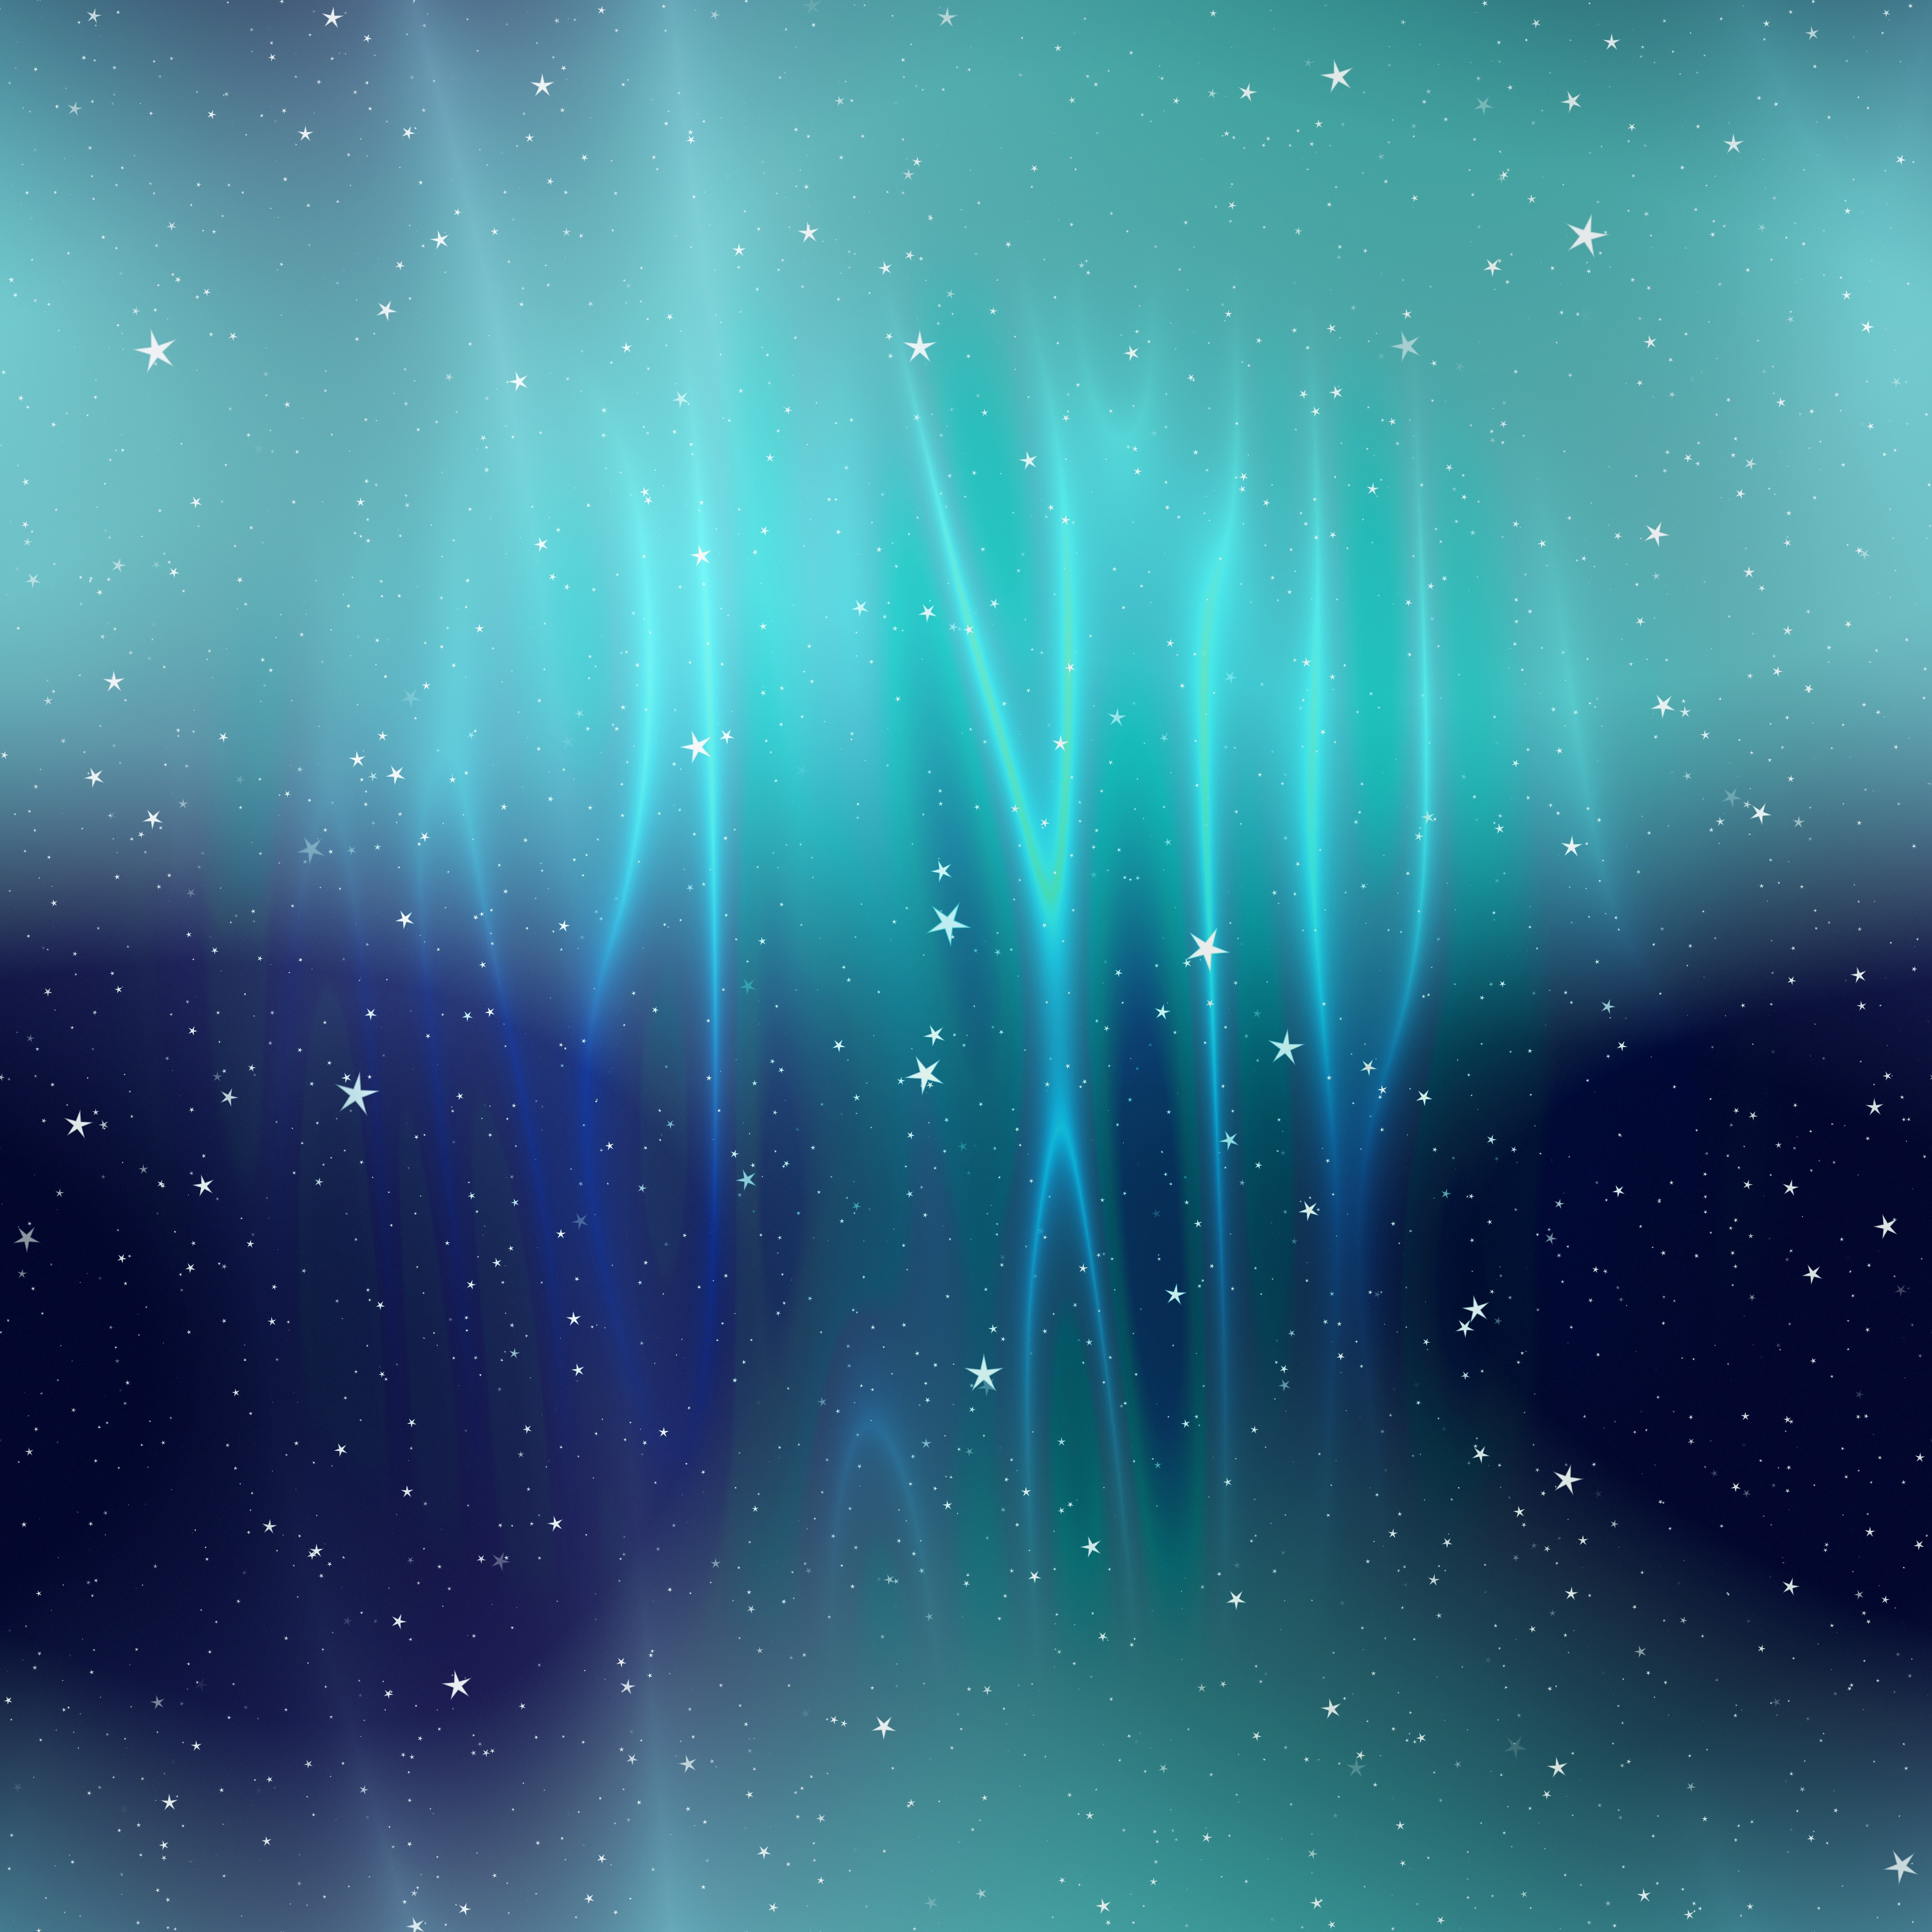 122945 download wallpaper Abstract, Shine, Brilliance, Lines, Gradient, Stars, Patterns screensavers and pictures for free